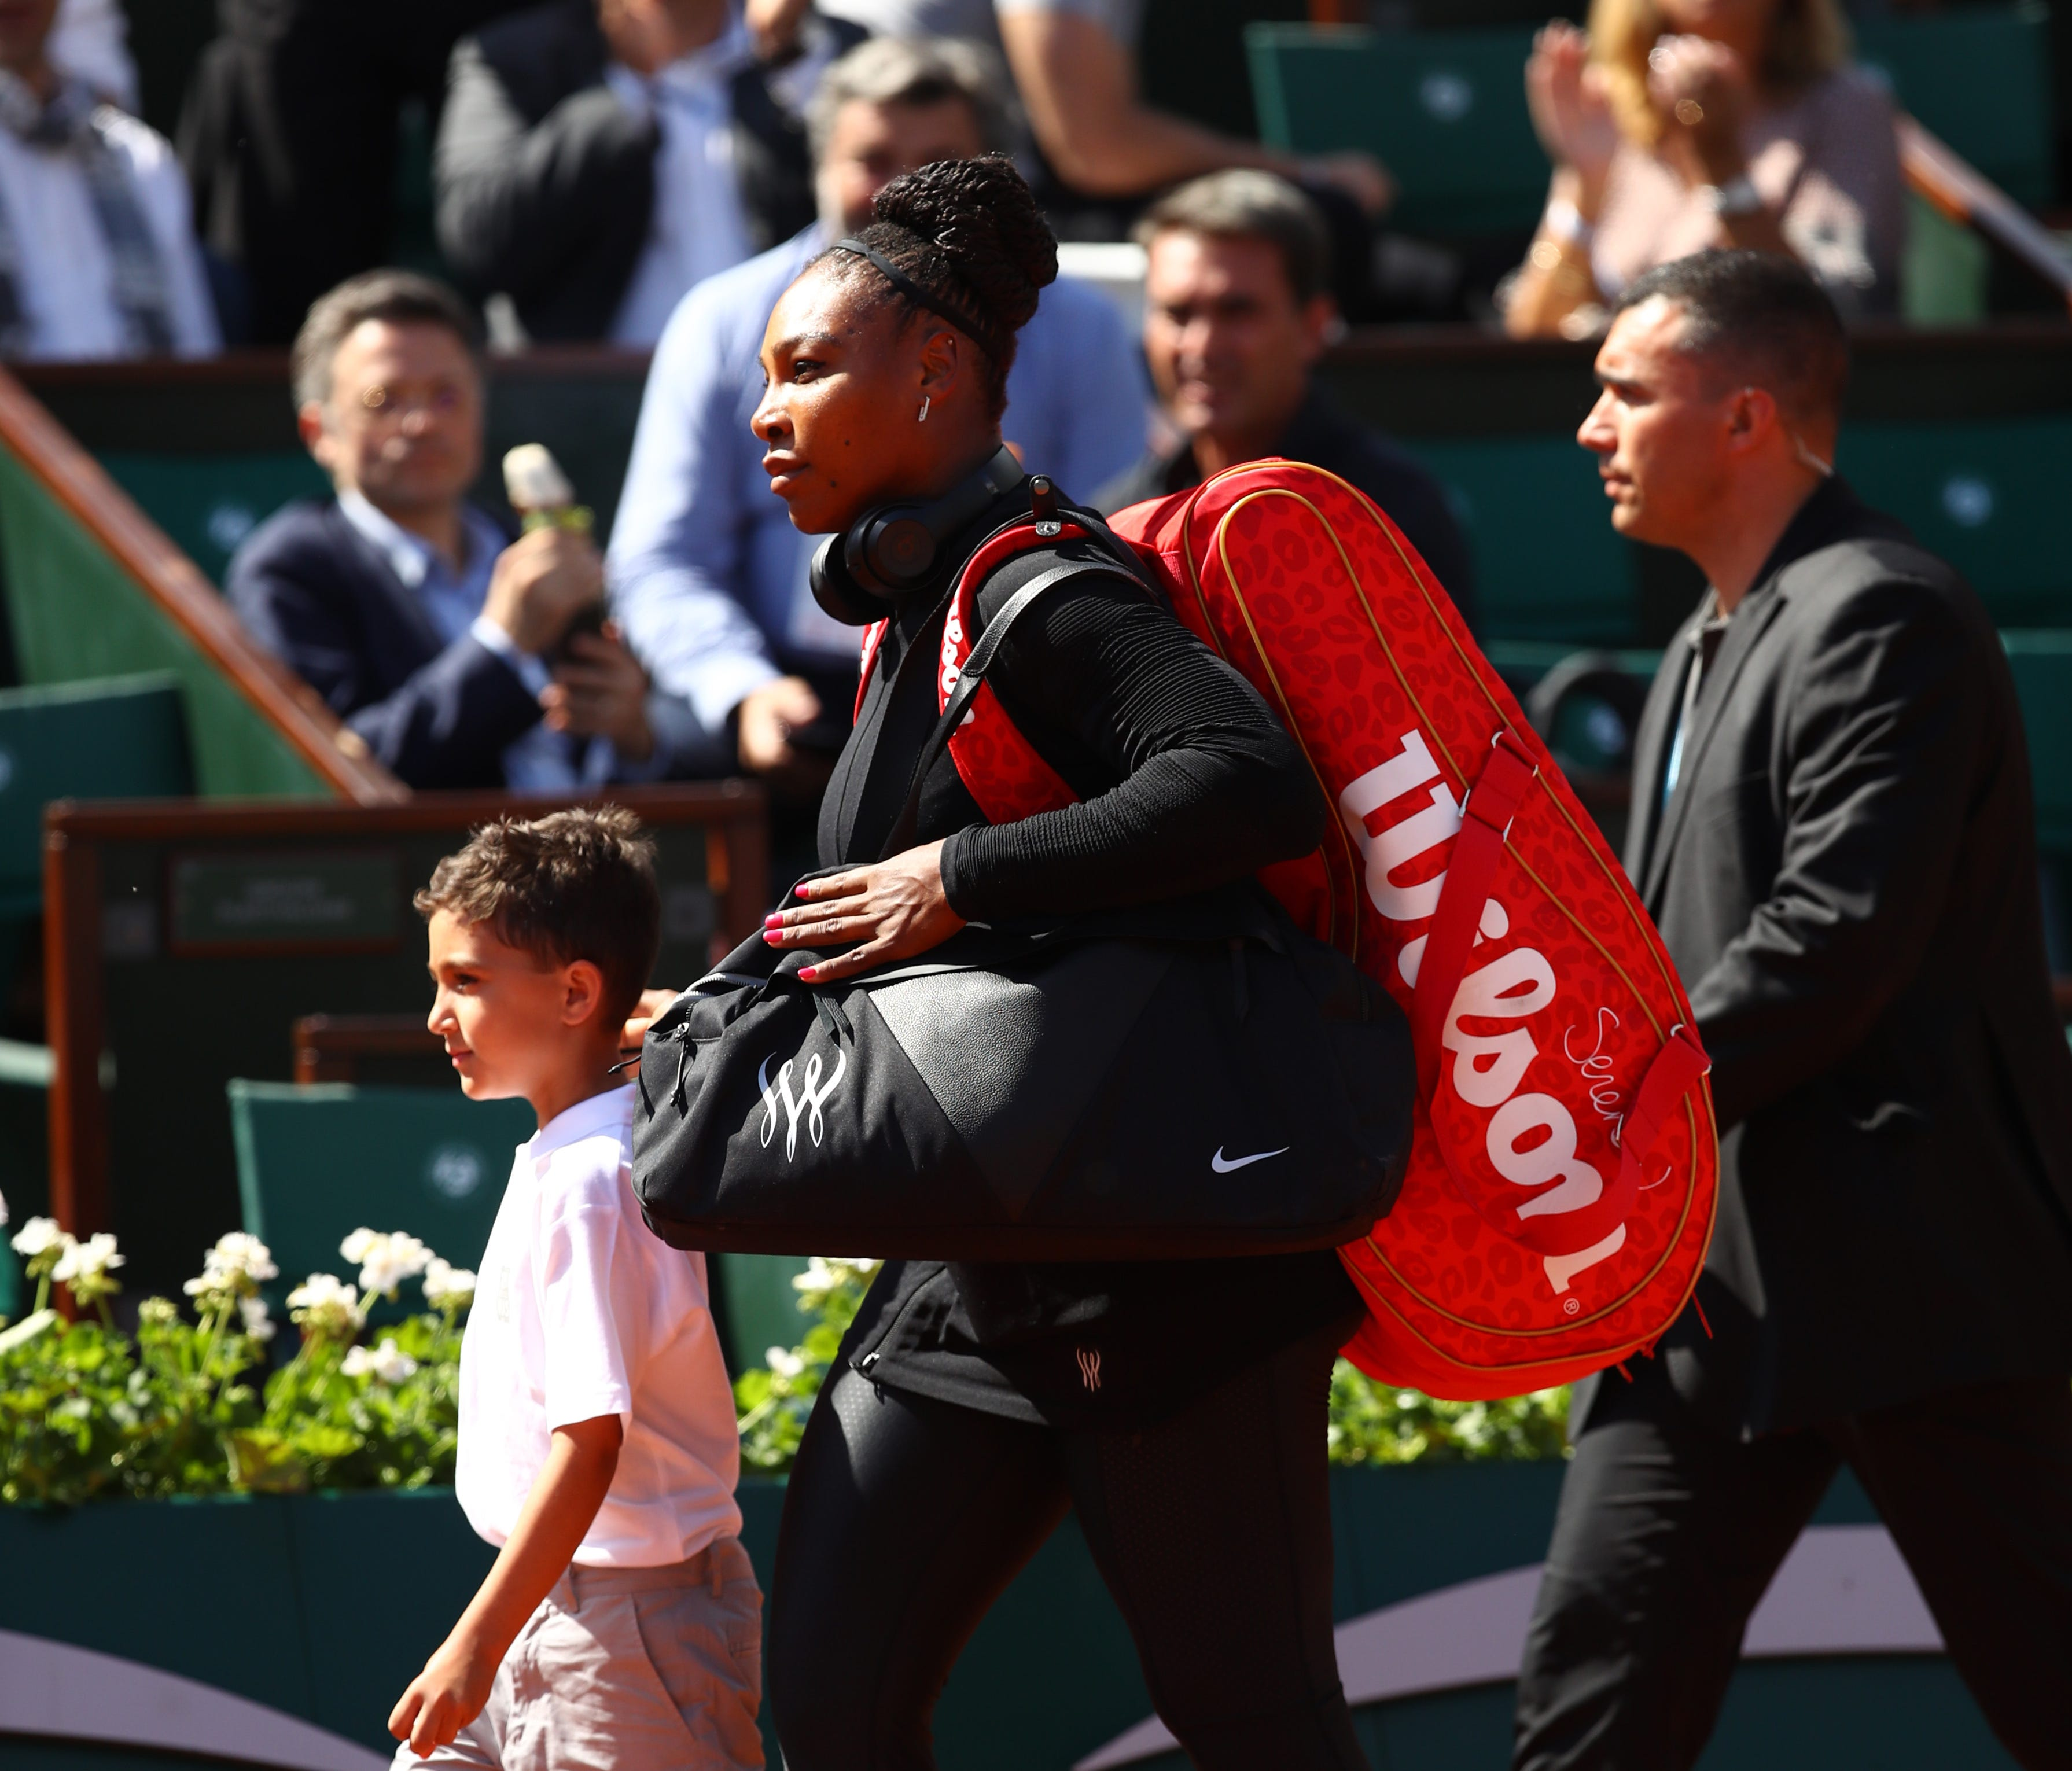 Serena Williams walks out onto court for her singles match against Kristyna Pliskova of Czech Republic during day three of the 2018 French Open at Roland Garros on May 29.